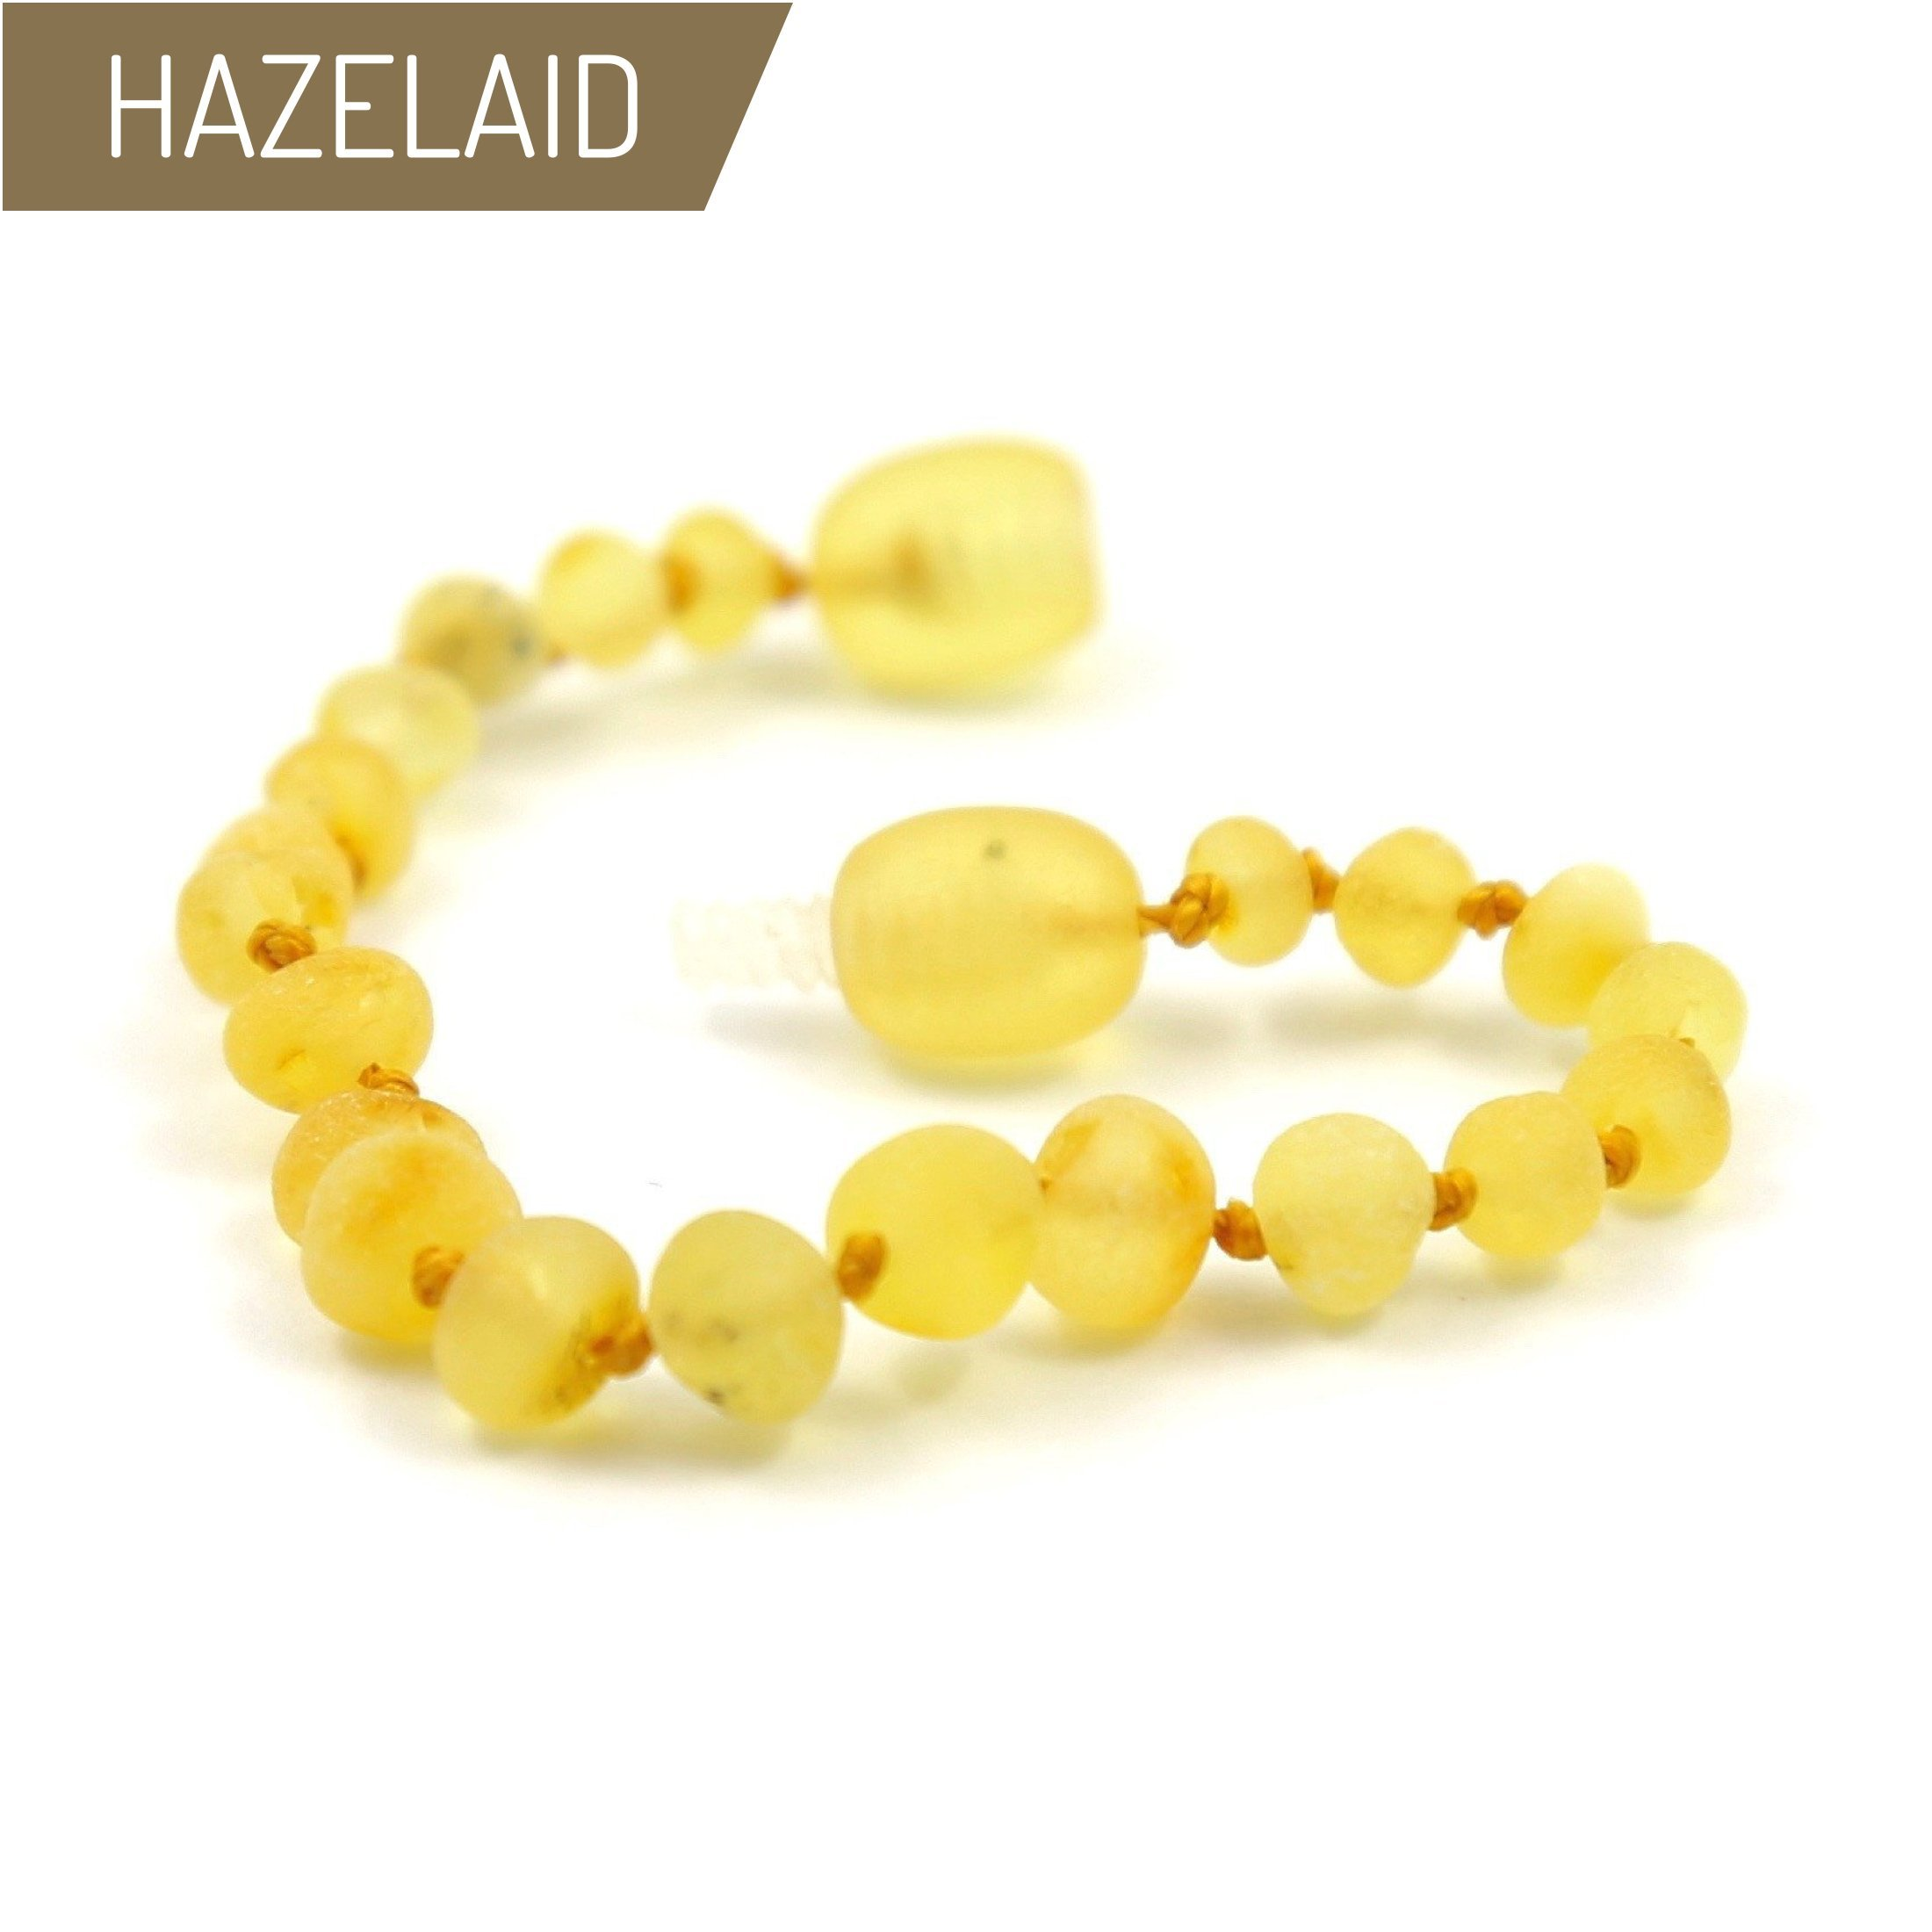 Hazelaid (TM) 5.5'' Twist-Clasp Baltic Amber Lemondrop Bracelet